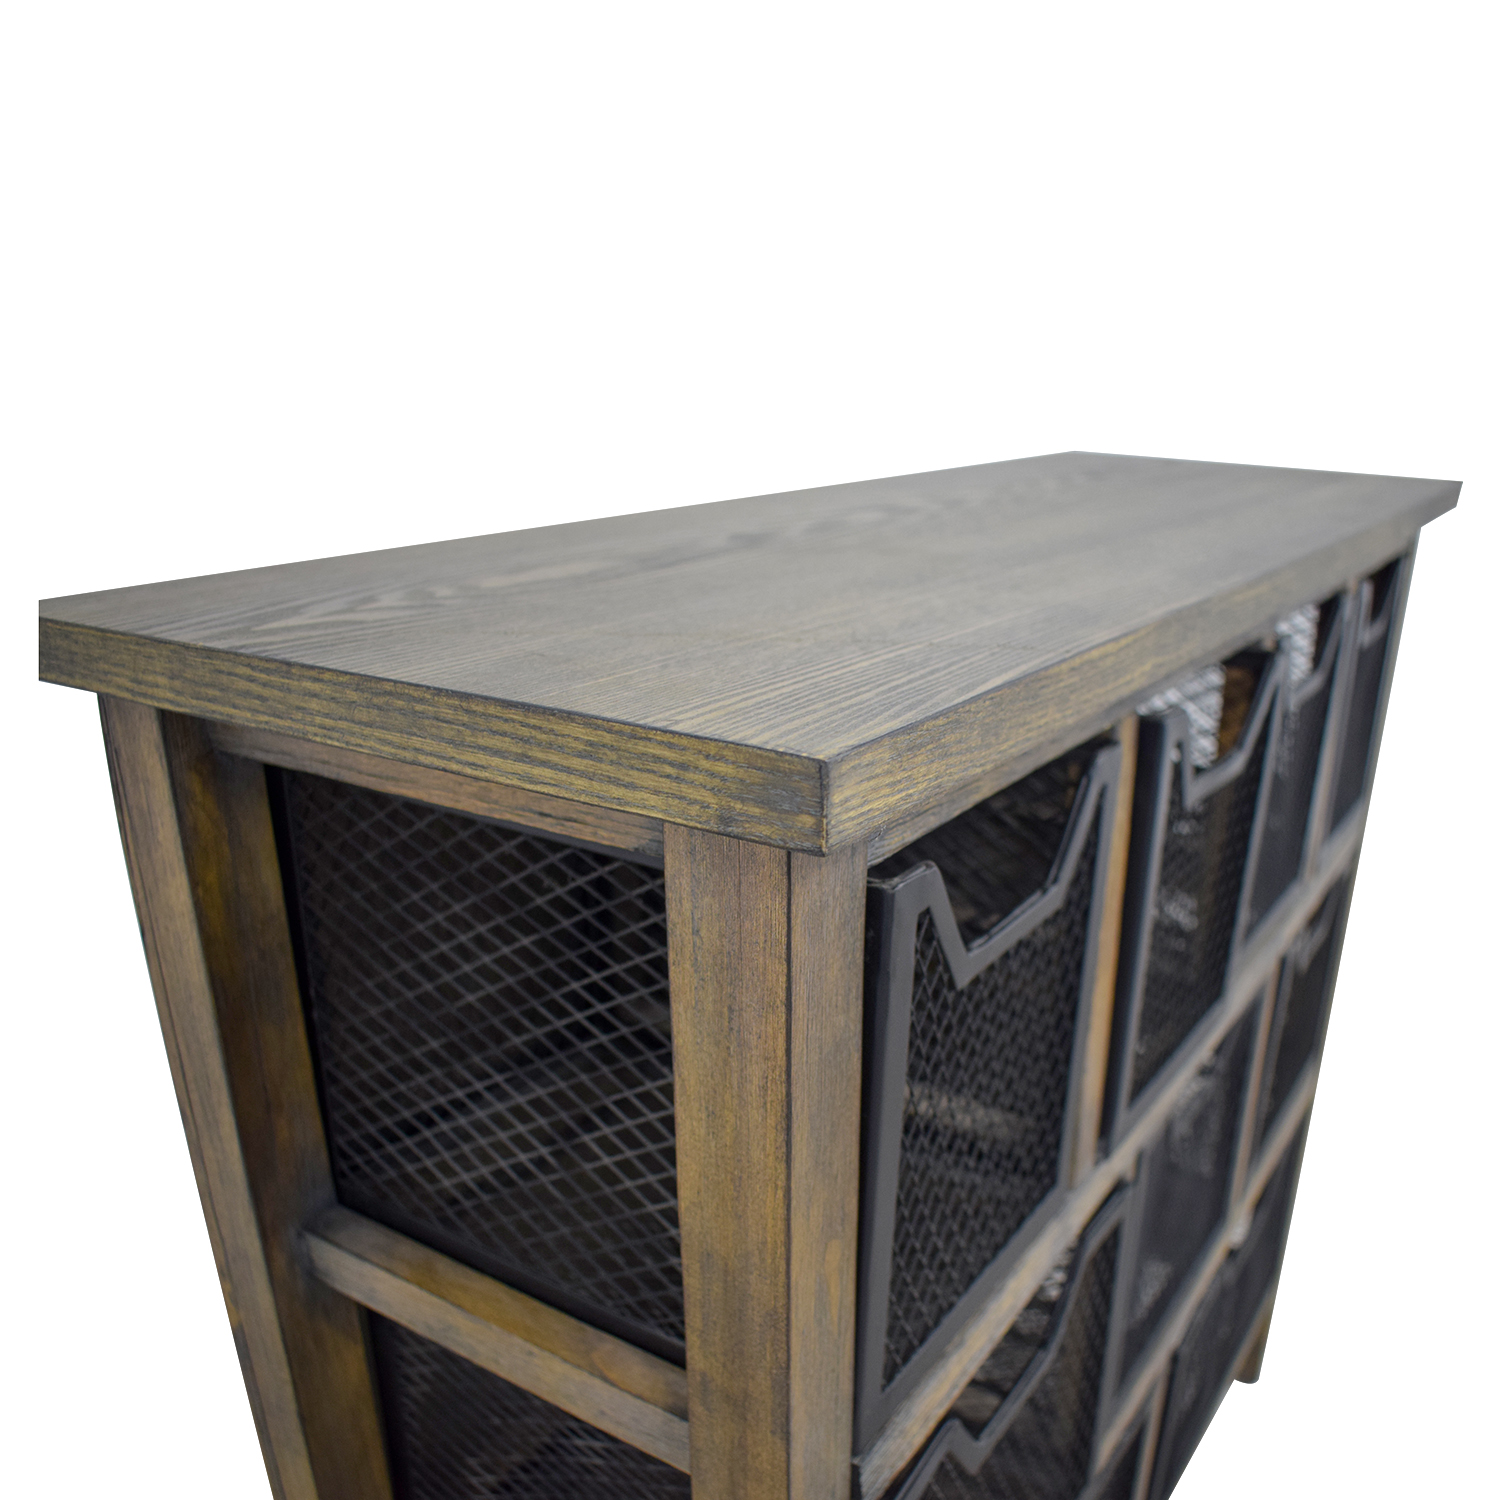 74 Off Rustic Wood With Metal Baskets Cabinet Storage